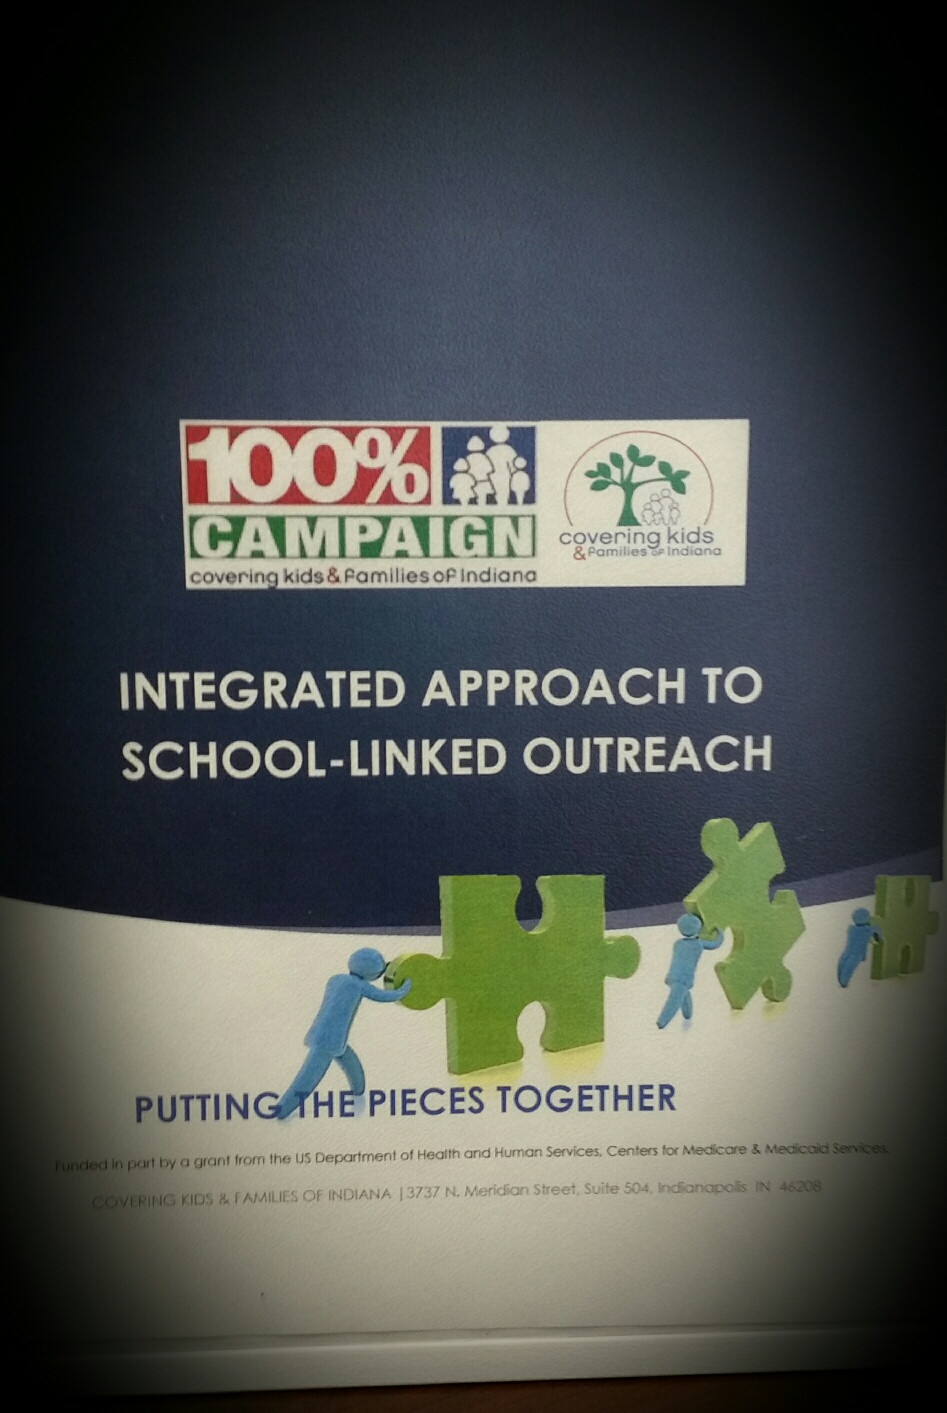 Guidebook: Integrated Approach to School-Linked Outreach